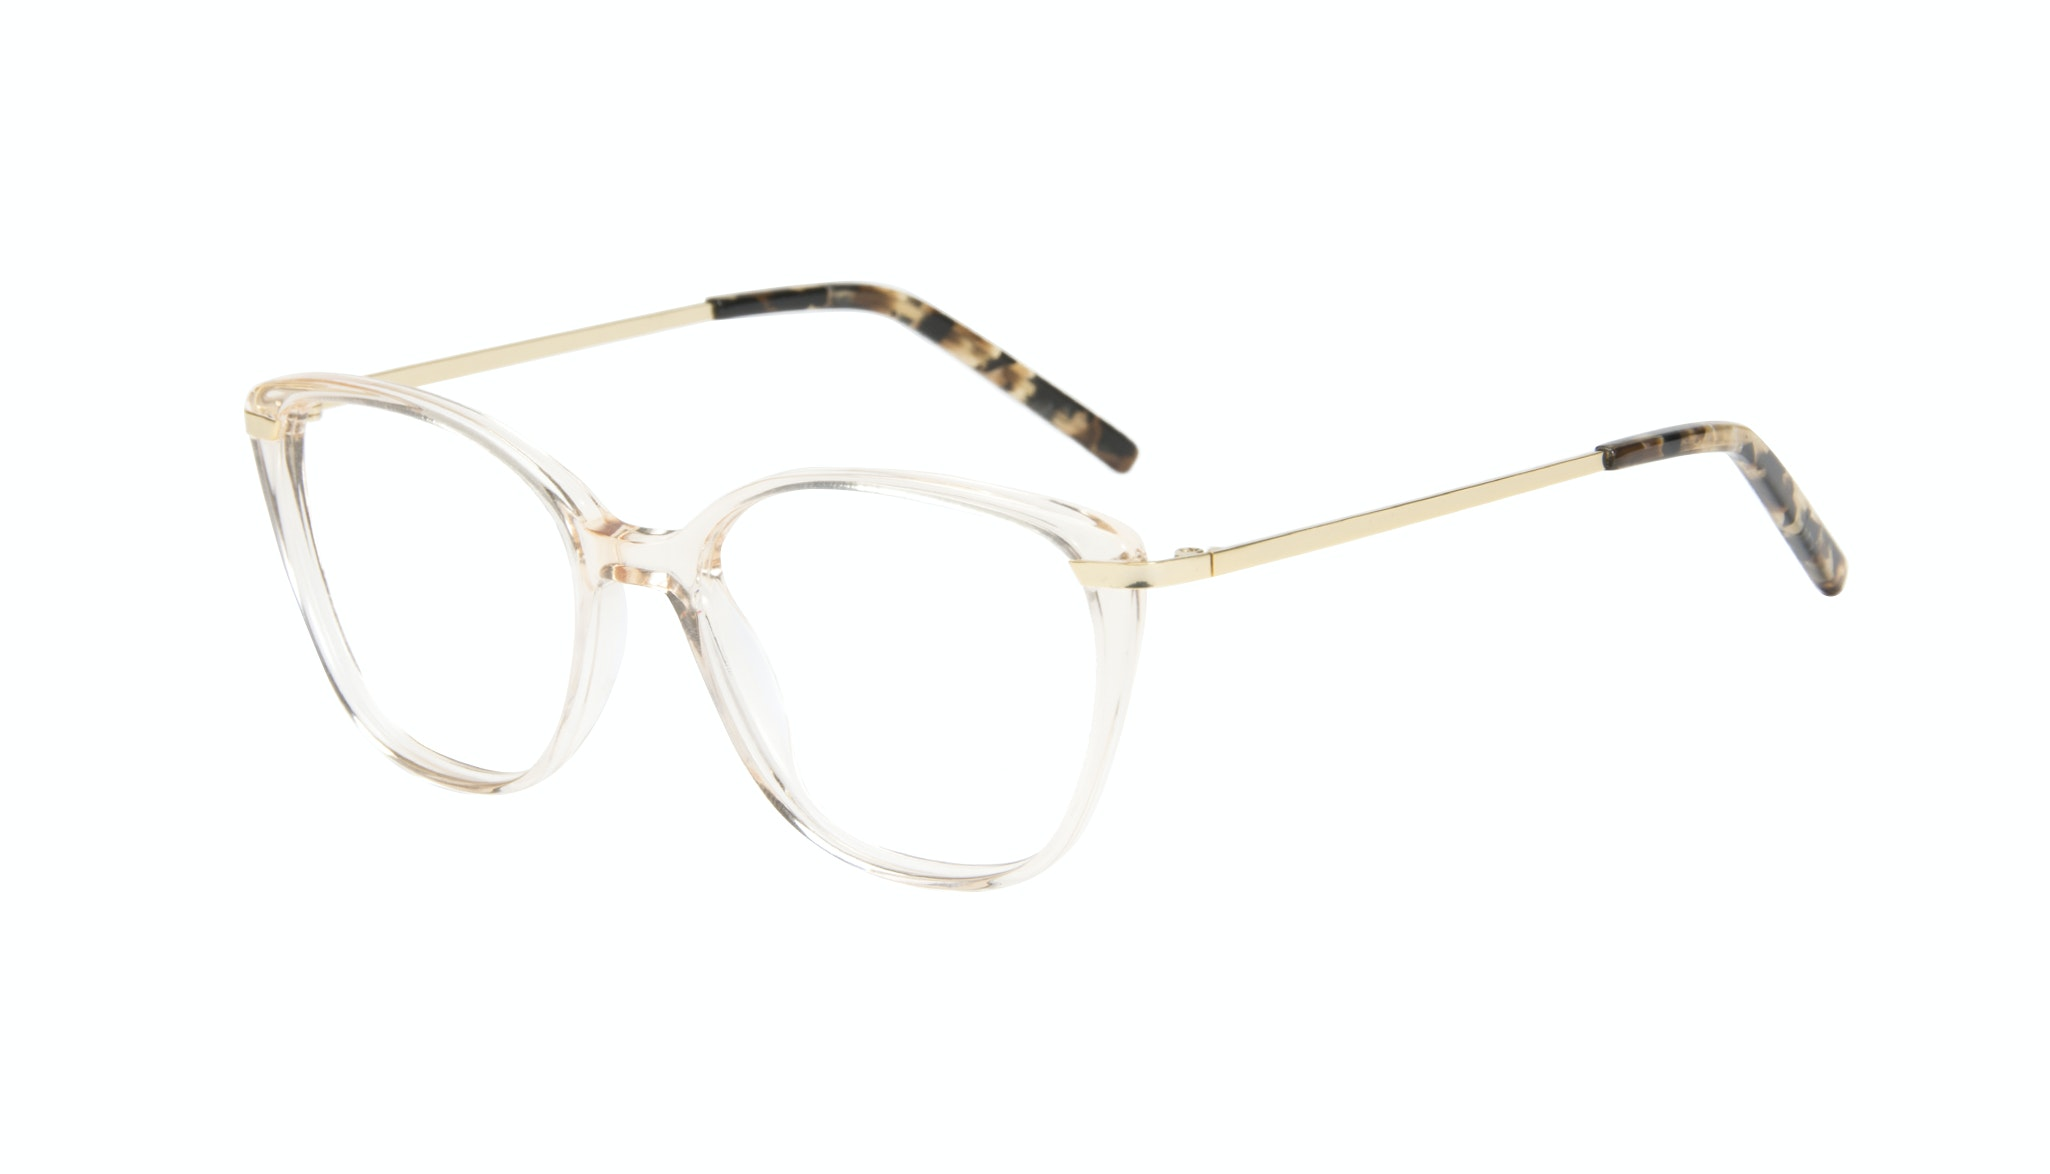 Affordable Fashion Glasses Cat Eye Rectangle Square Eyeglasses Women Illusion Blond Metal Tilt